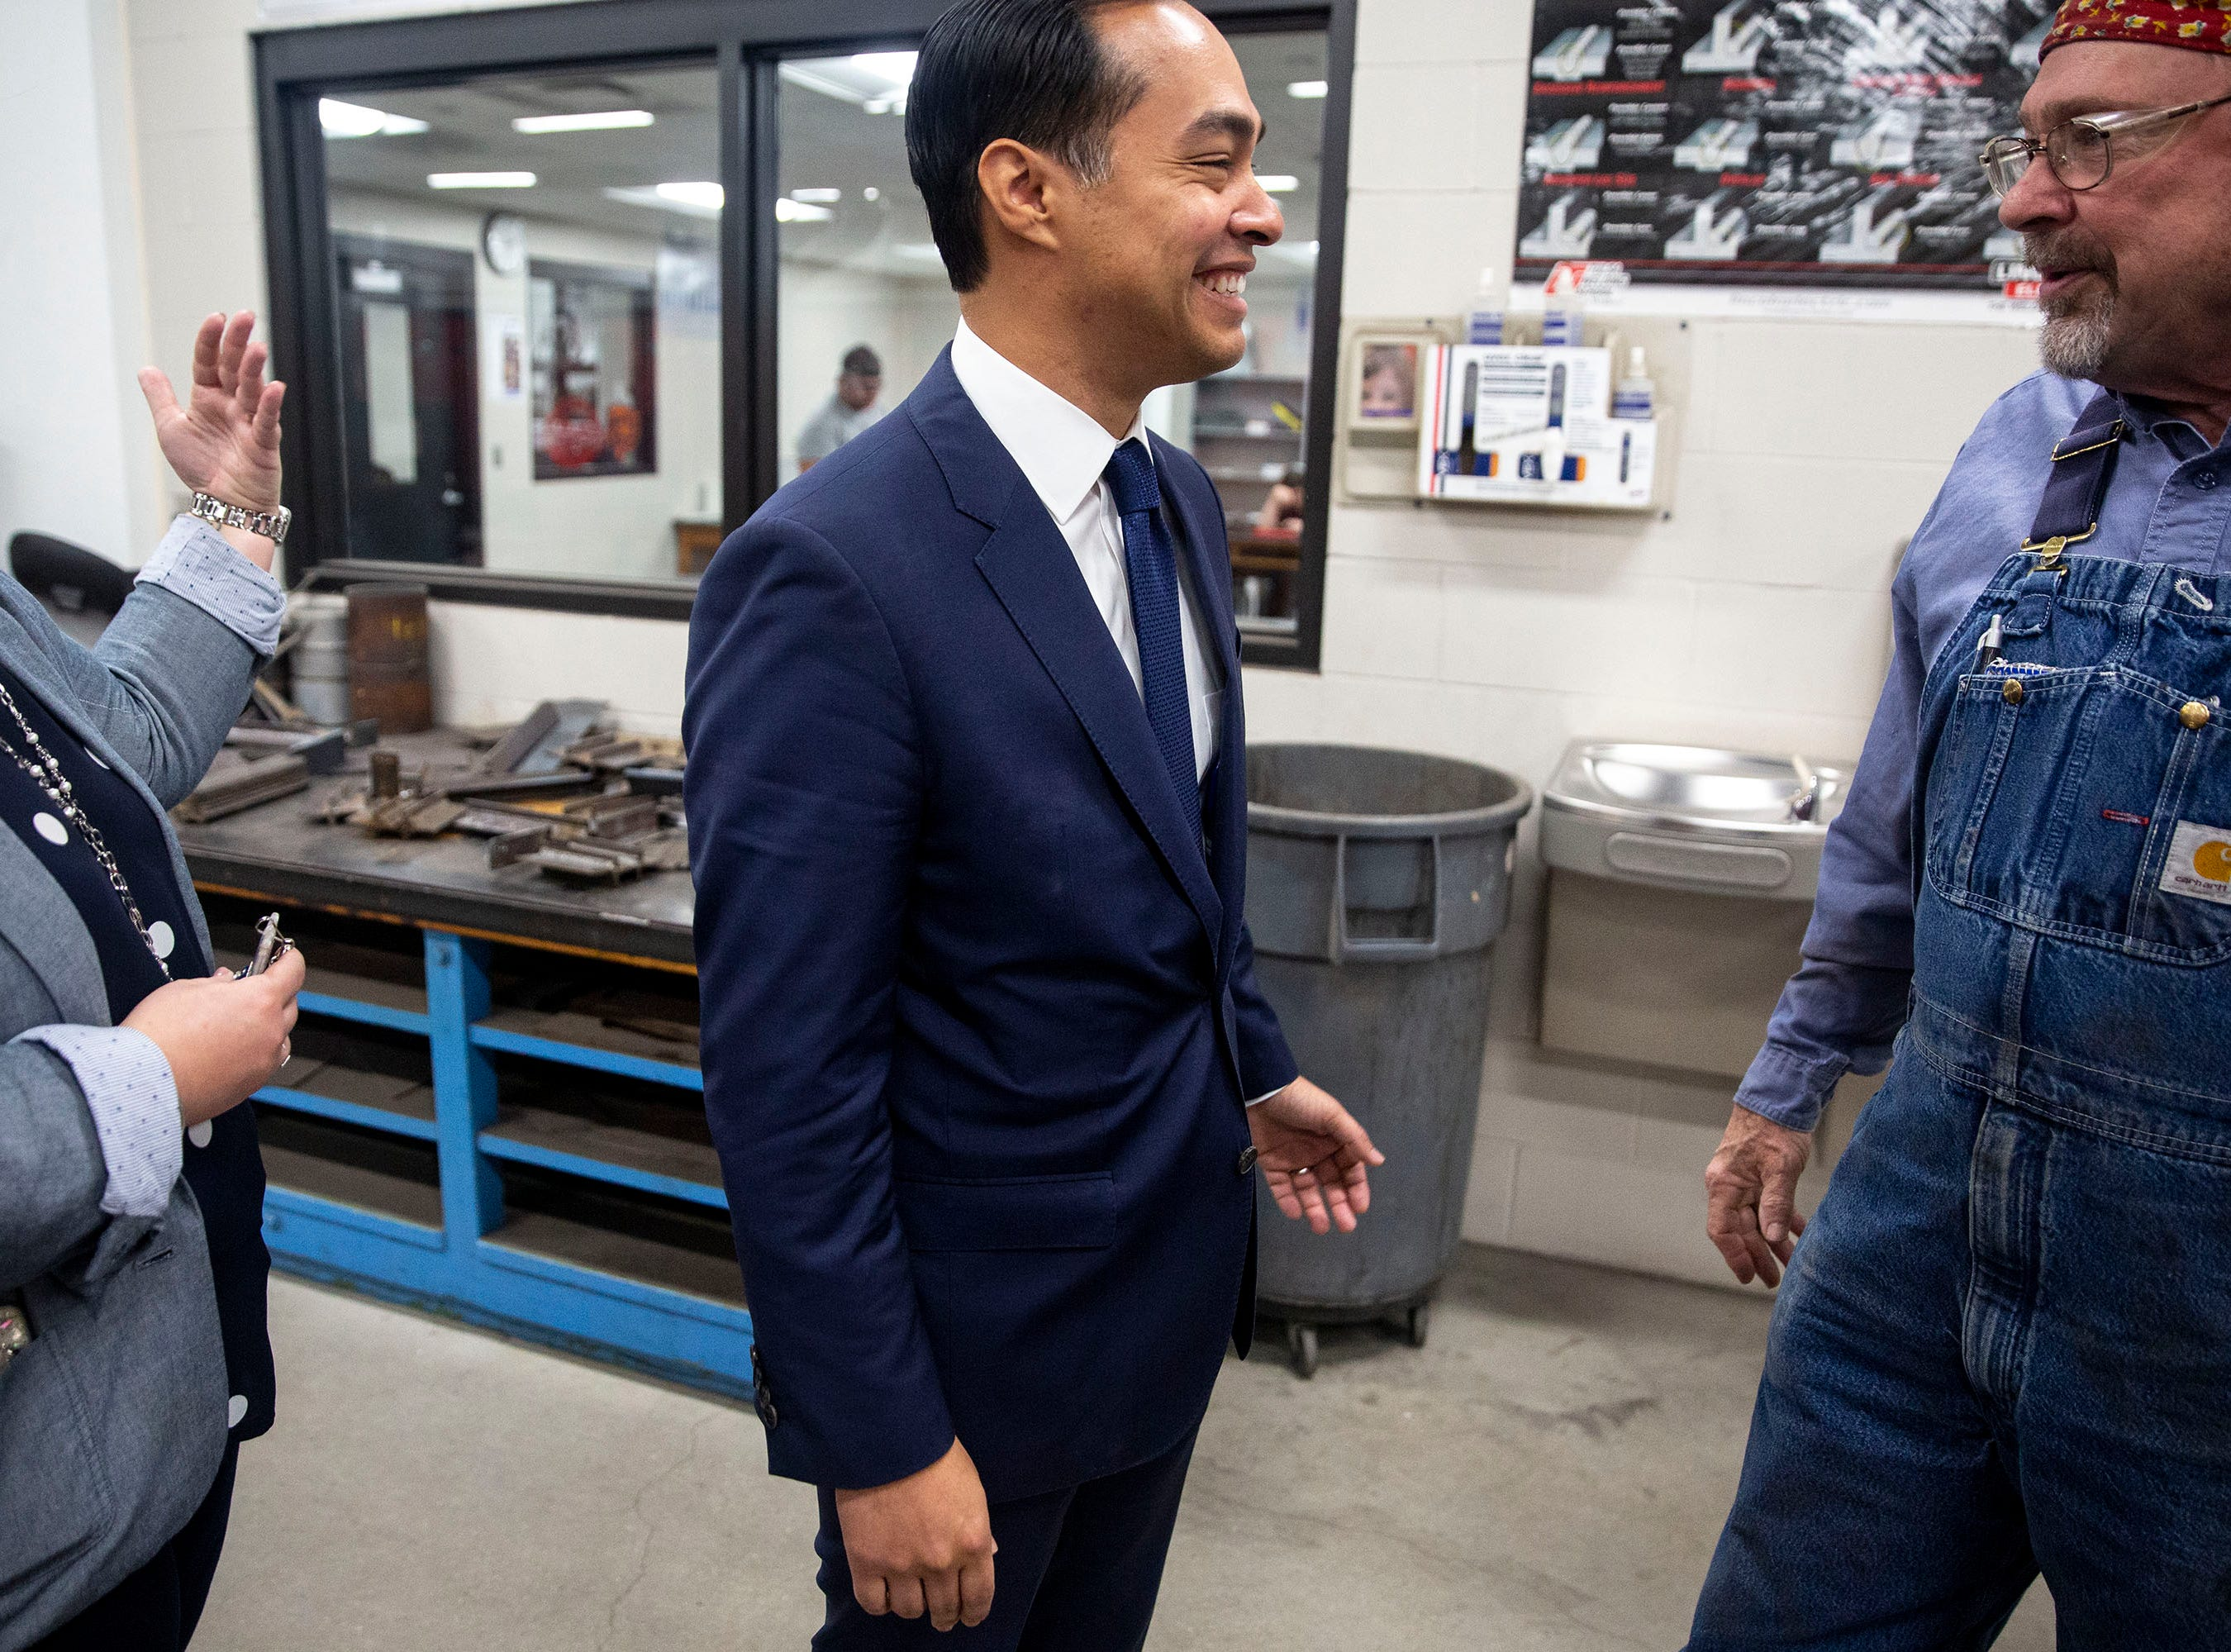 Tascha Brown, director of Des Moines Public Schools' Central Campus and welding instructor Ralph Young leads presidential hopeful Julián Castro through the welding lab of the school's skilled trades academy on Monday, April 15, 2019, in Des Moines.